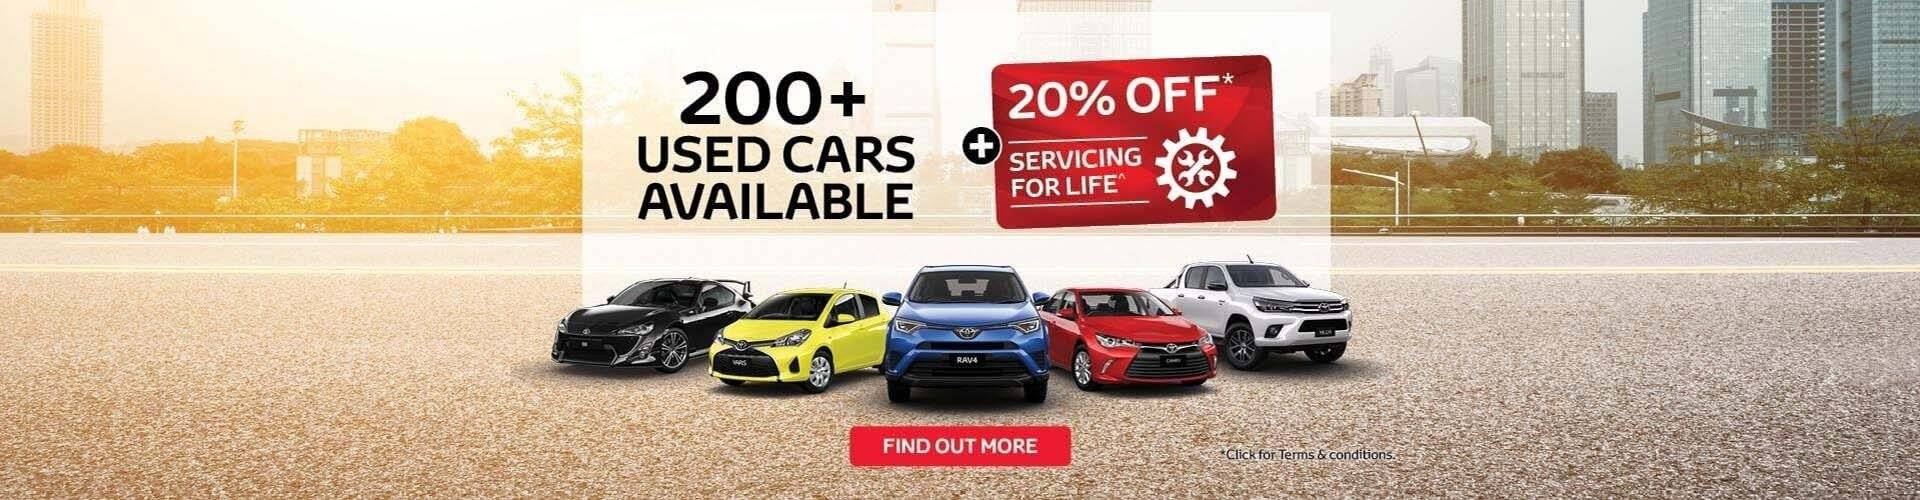 Used Cars Available